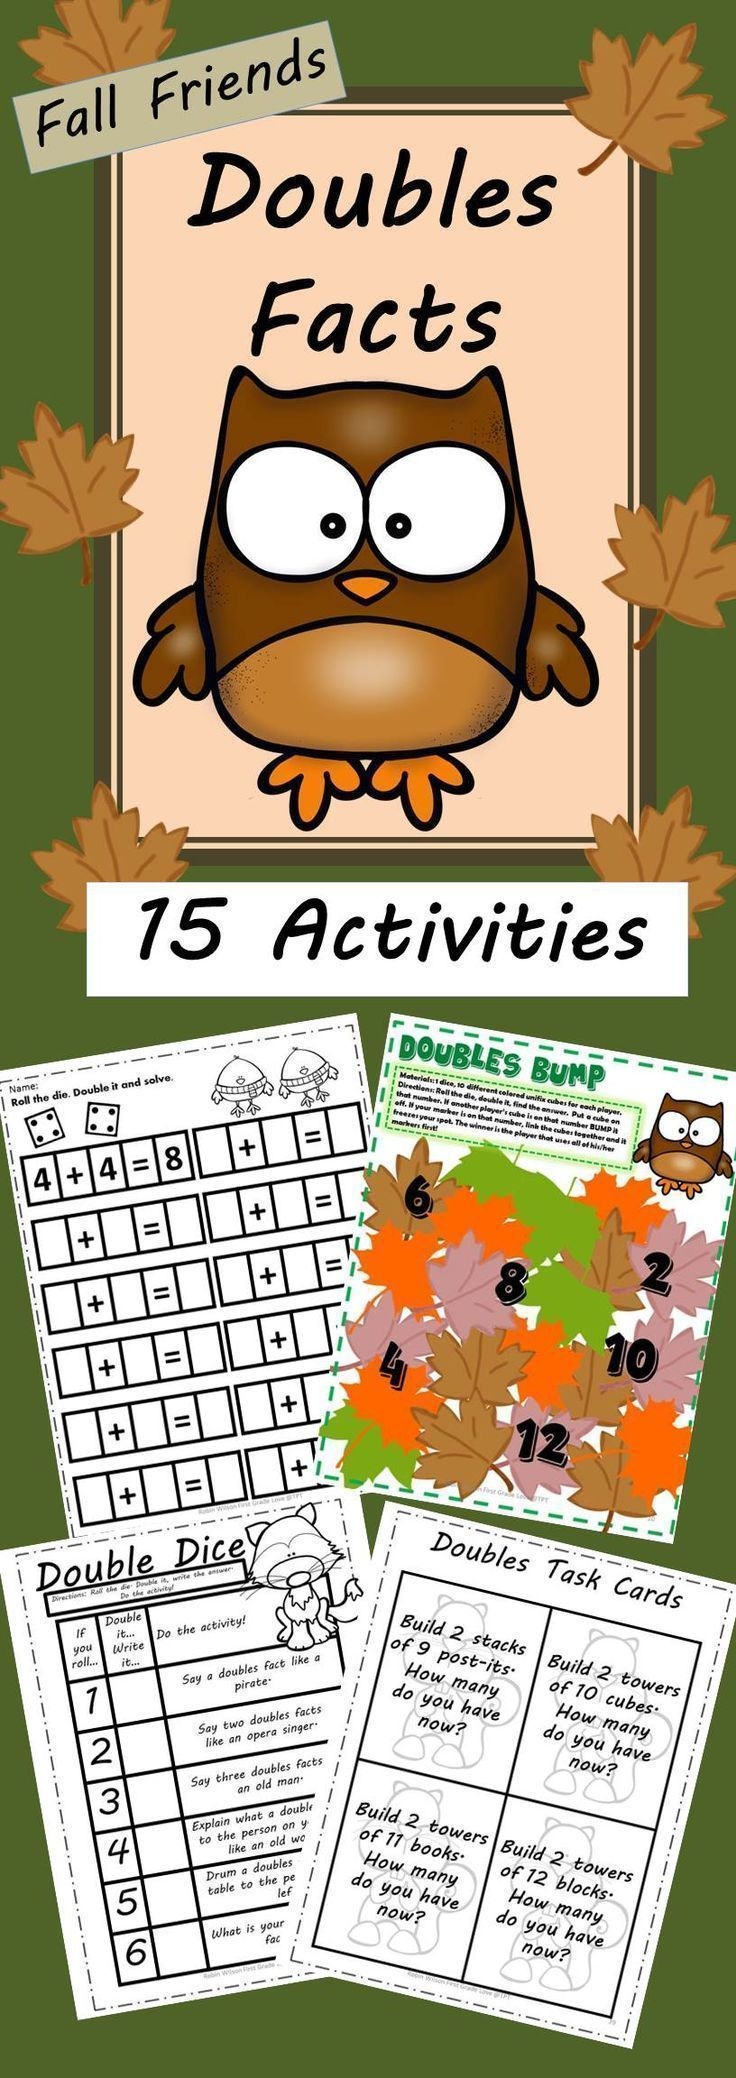 worksheet Doubles Facts 17 best ideas about doubles facts on pinterest addition facts